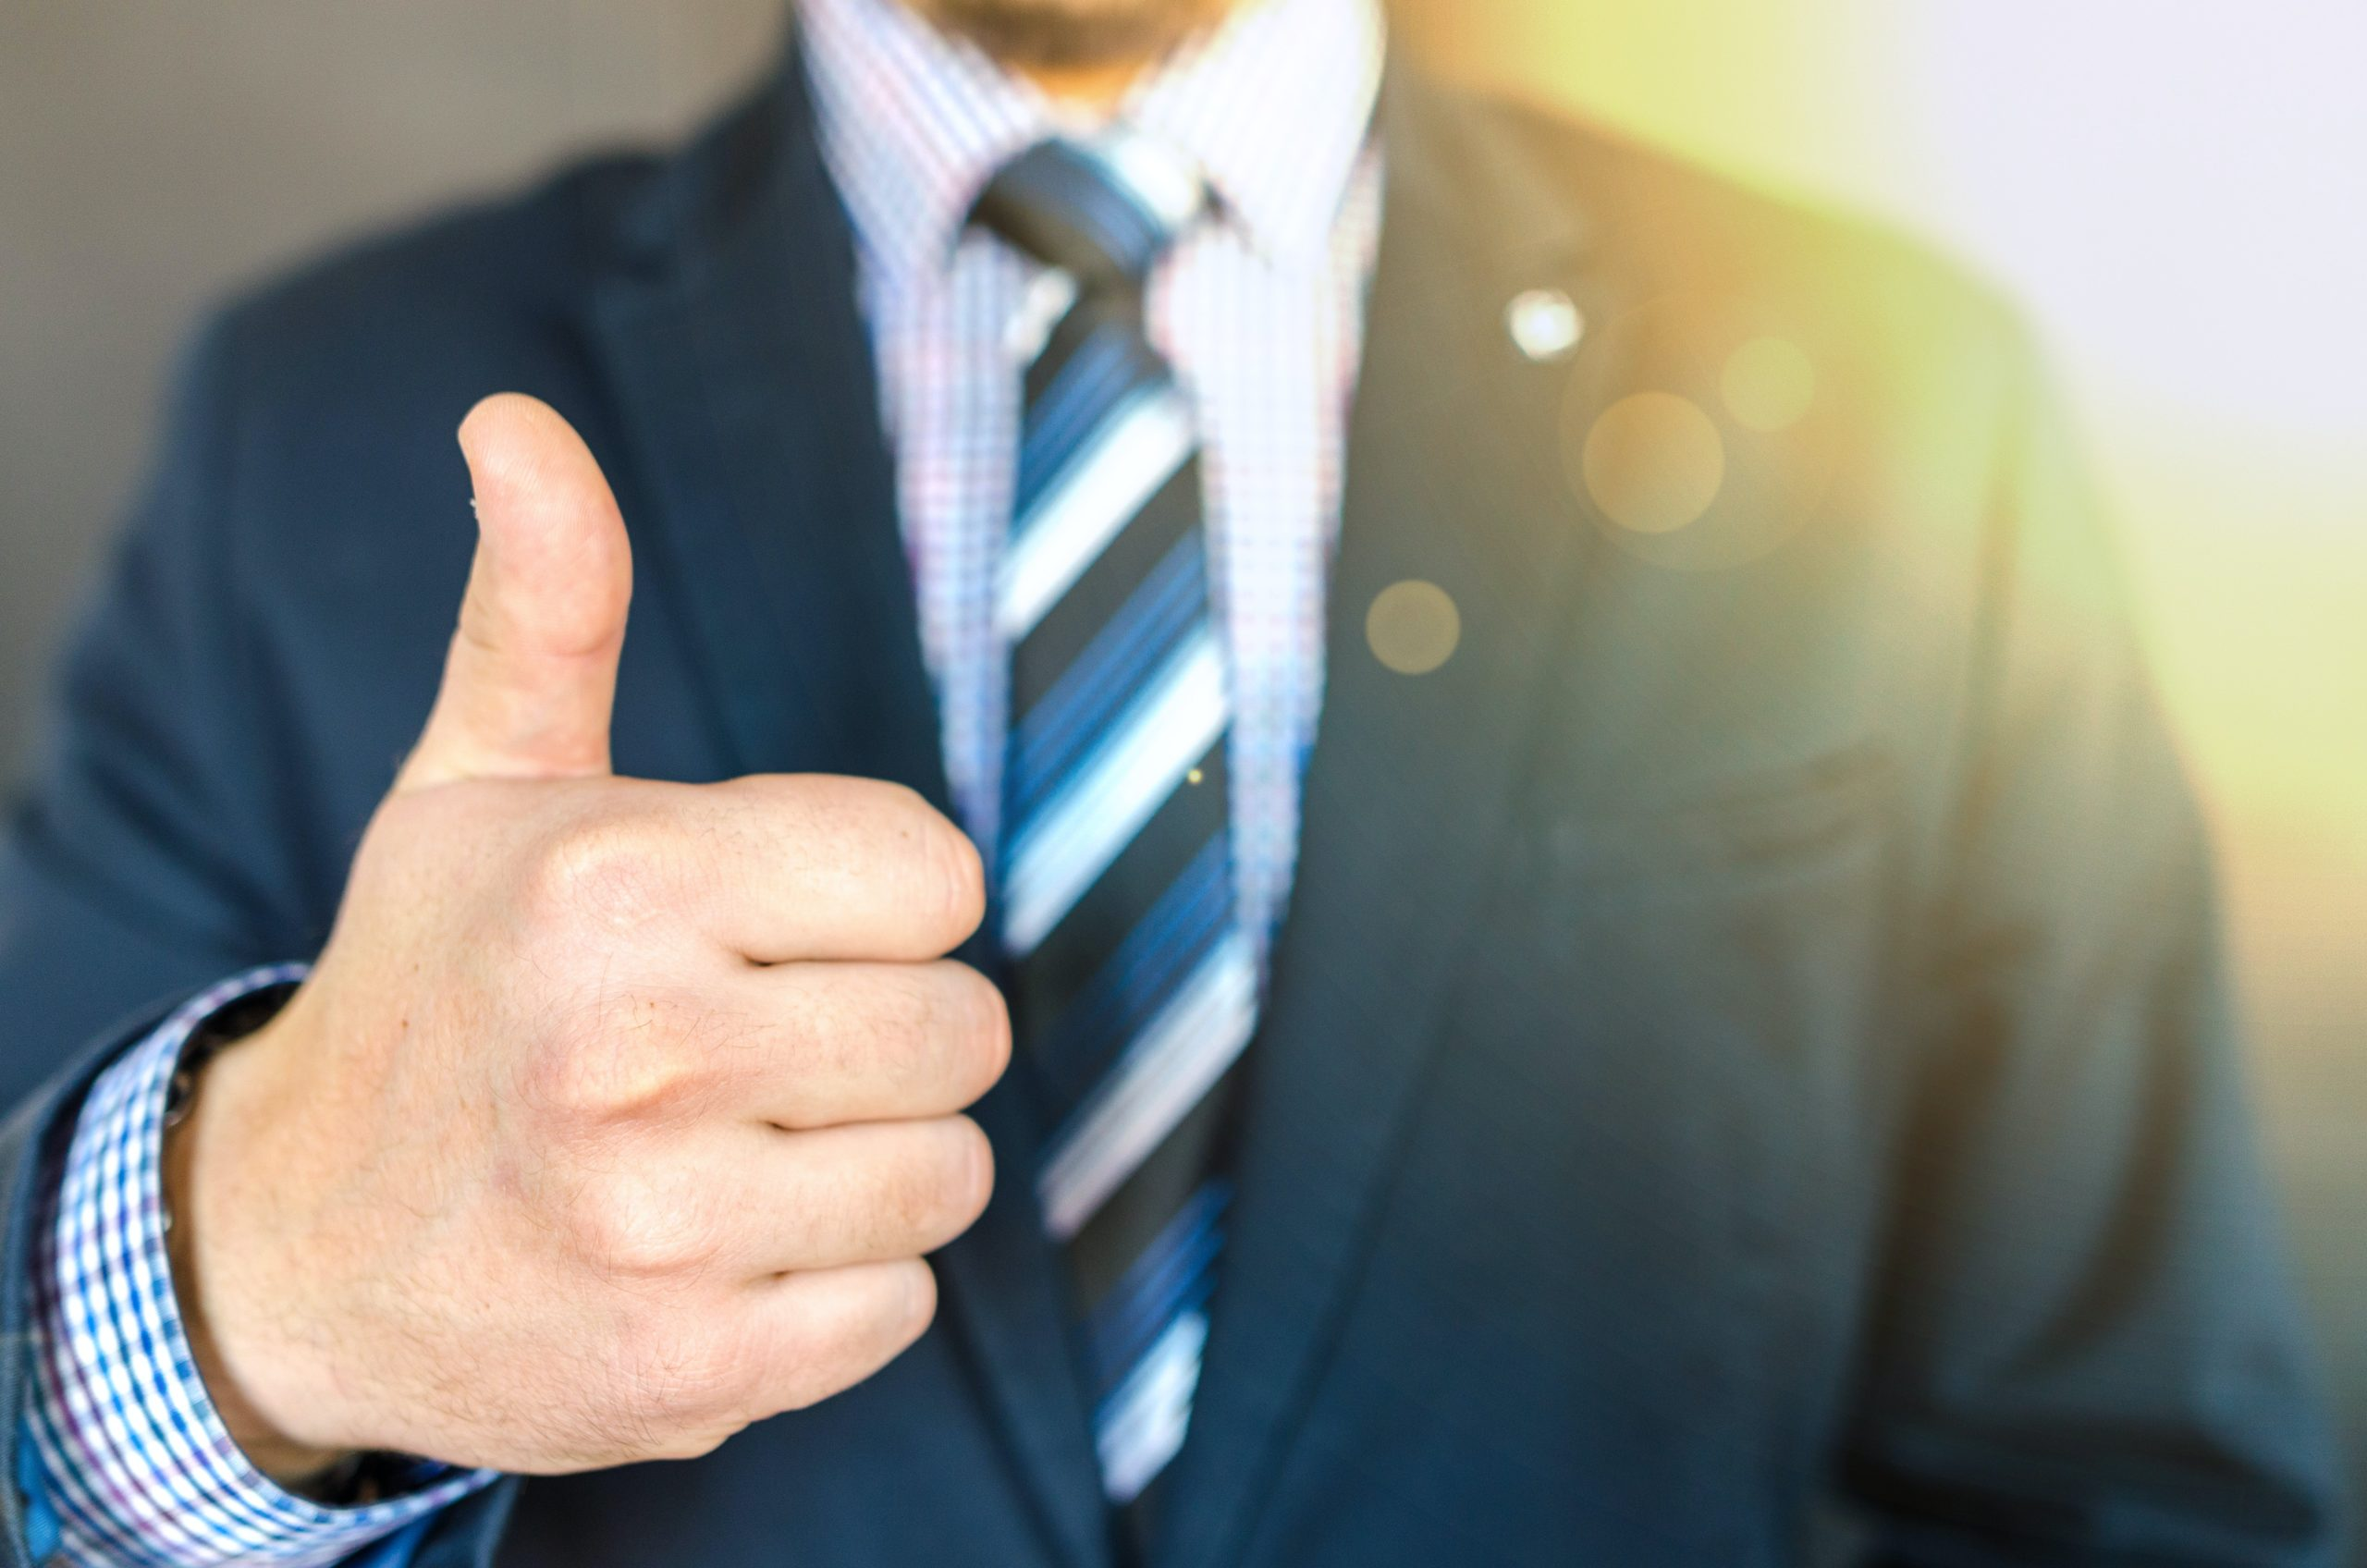 Work Safe close up photo of man wearing black suit jacket doing thumbs 684385 scaled